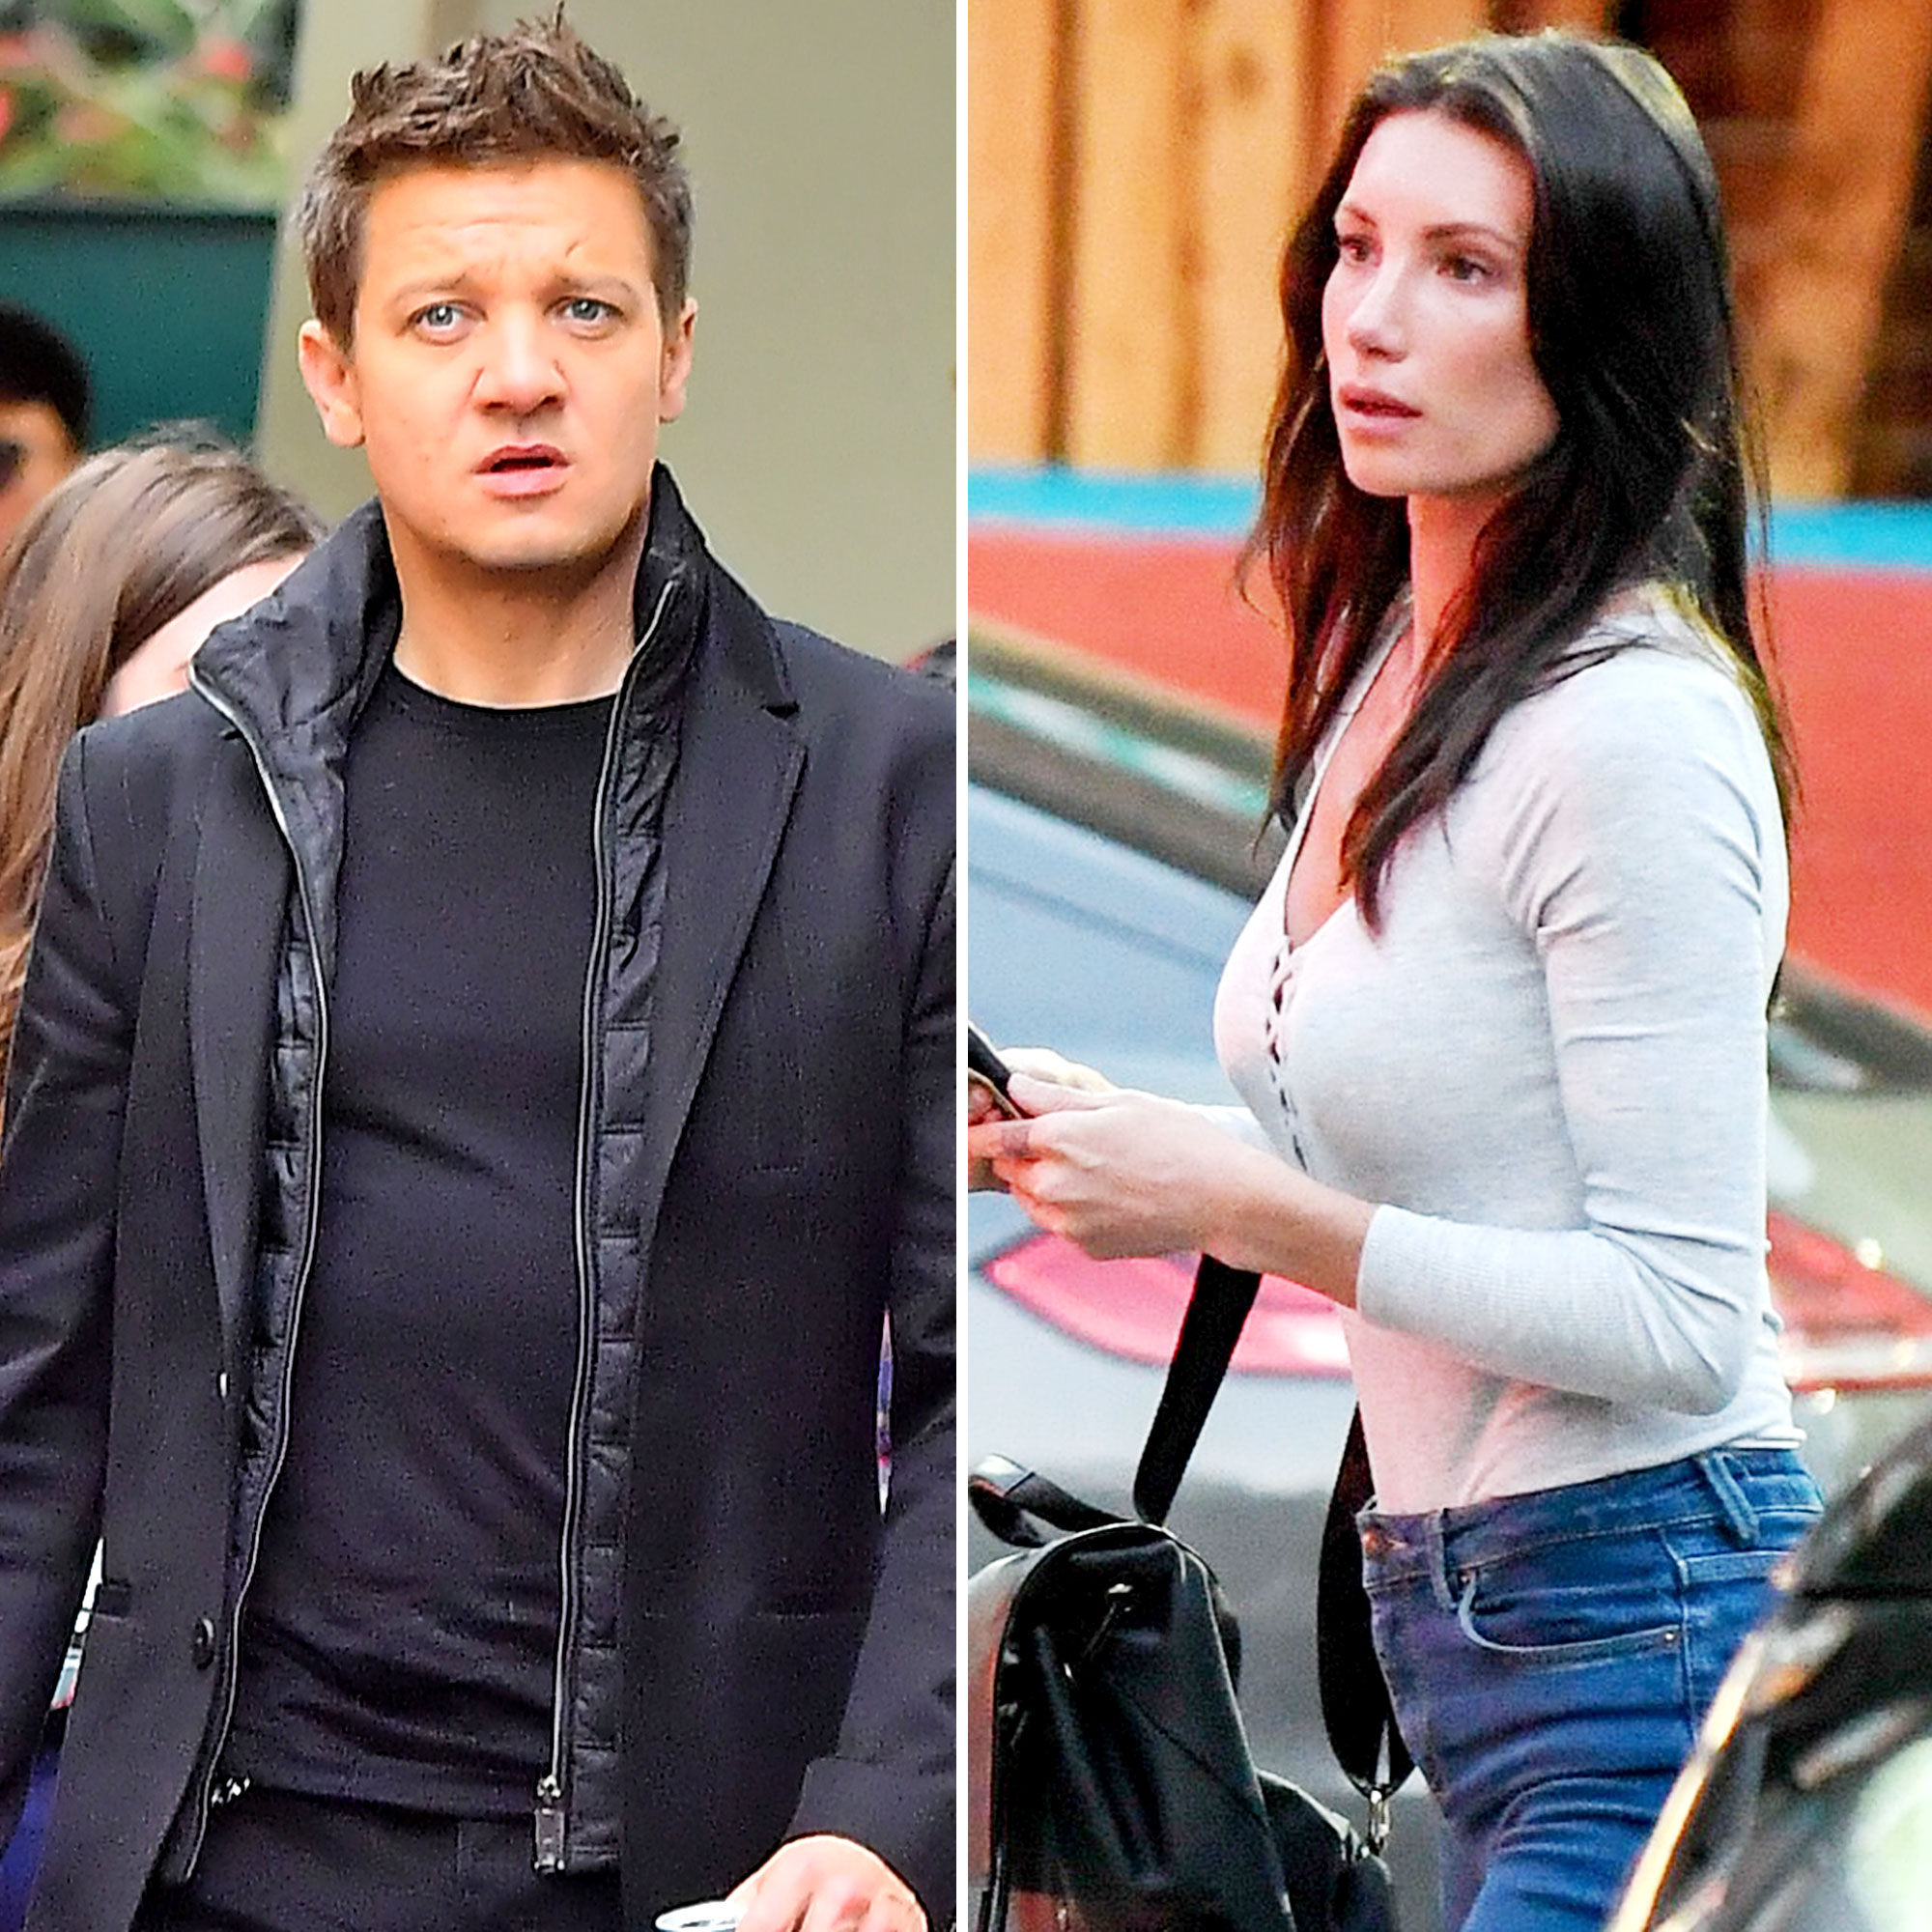 Jeremy Renner accuses ex-wife Sonni Pacheco of sending his